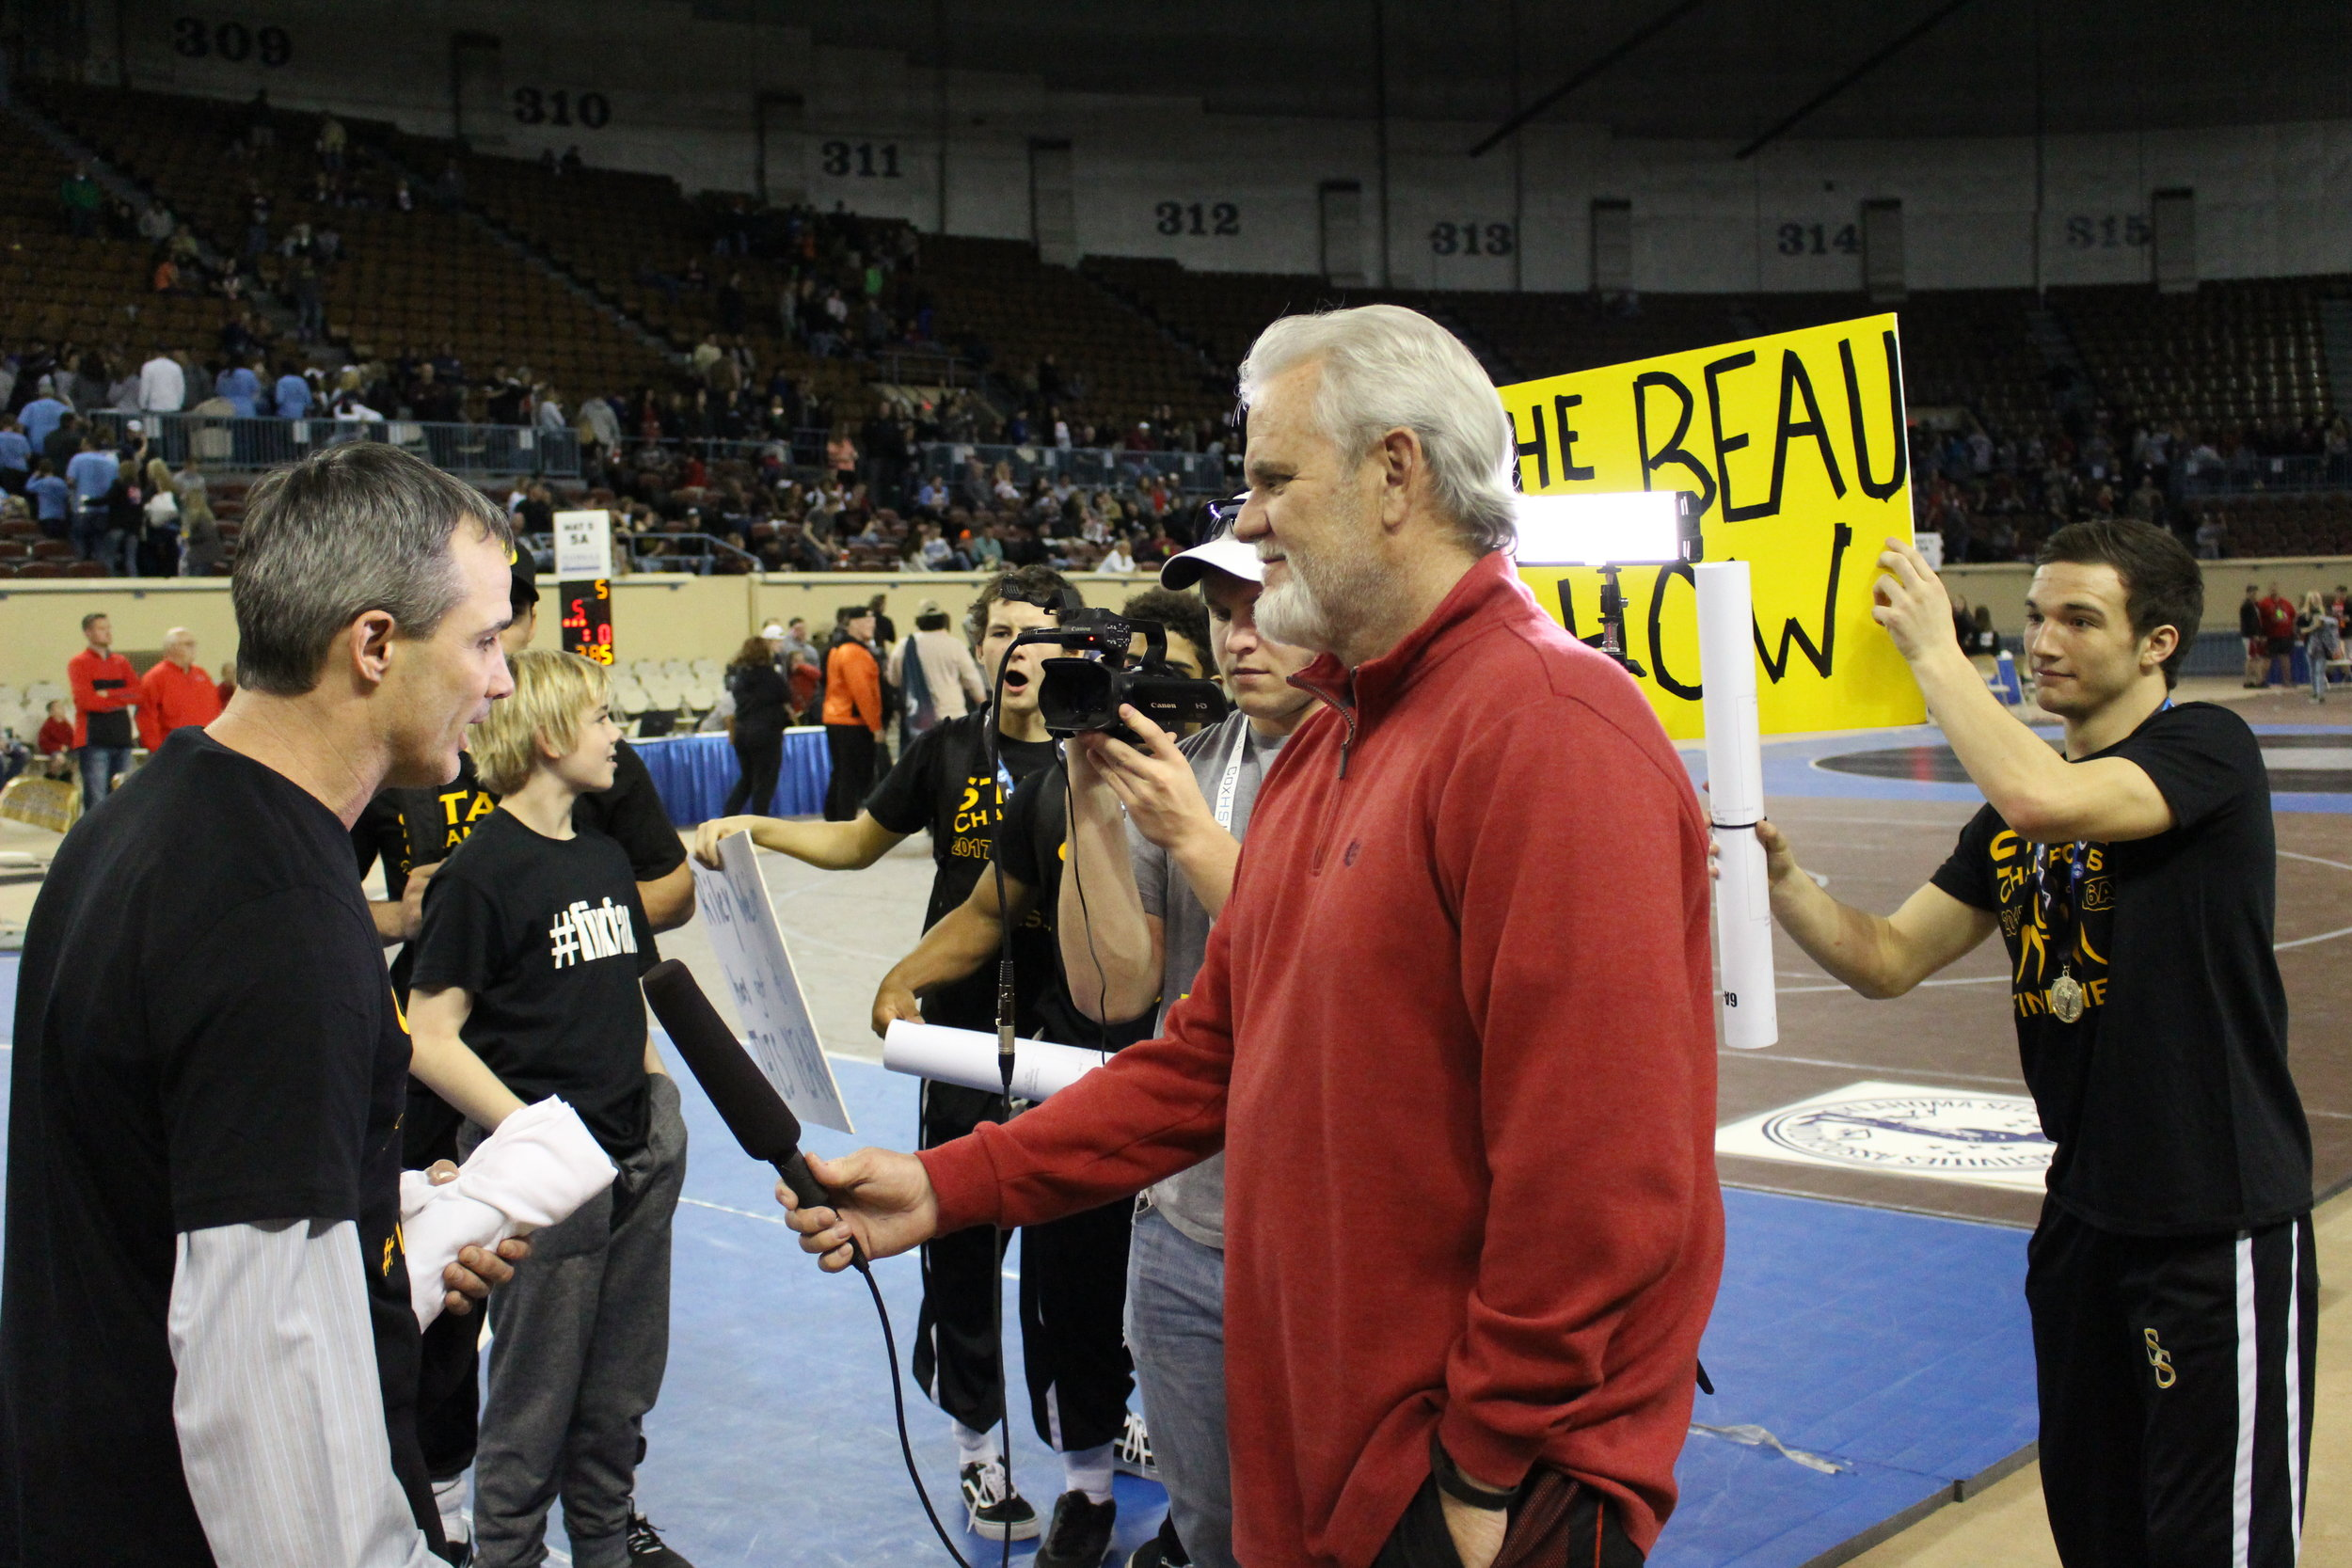 """Head Coach Kelly Smith gives a post-tournament interview, Beau Bratcher tries to get him to mention """"The Beau Show."""""""